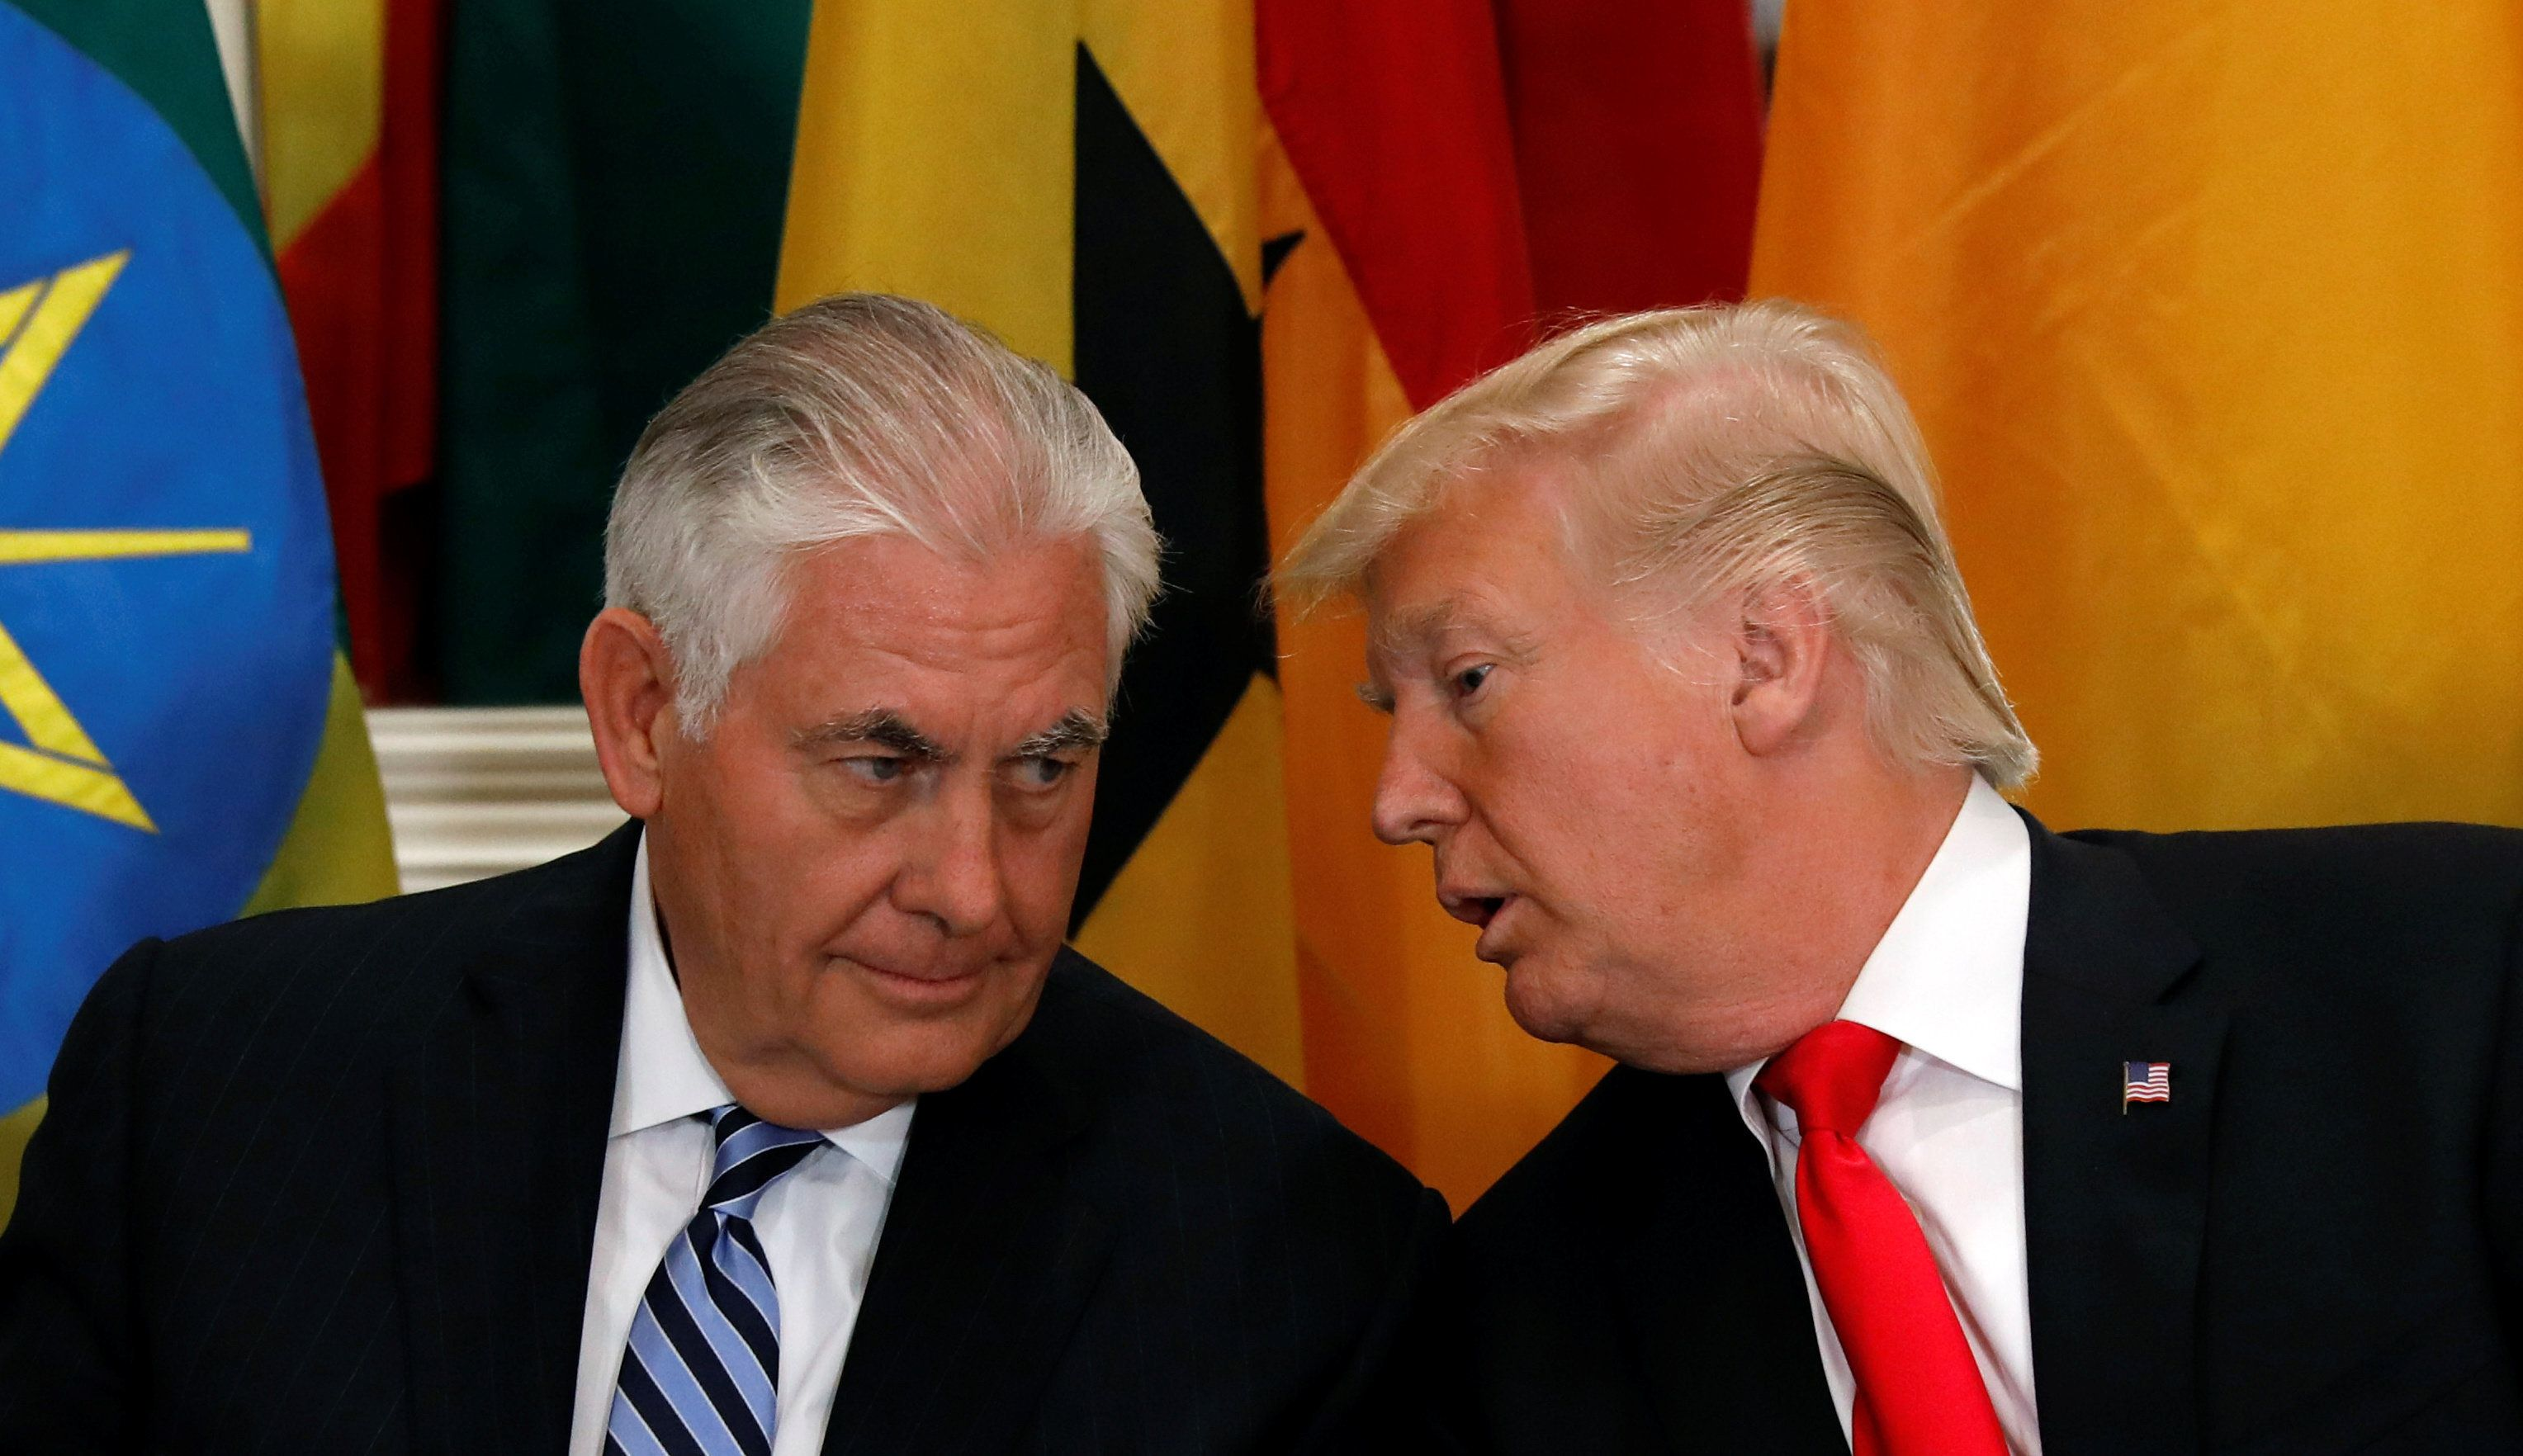 Rex Tillerson assures that President Trump hasn't 'castrated' him: 'I checked'